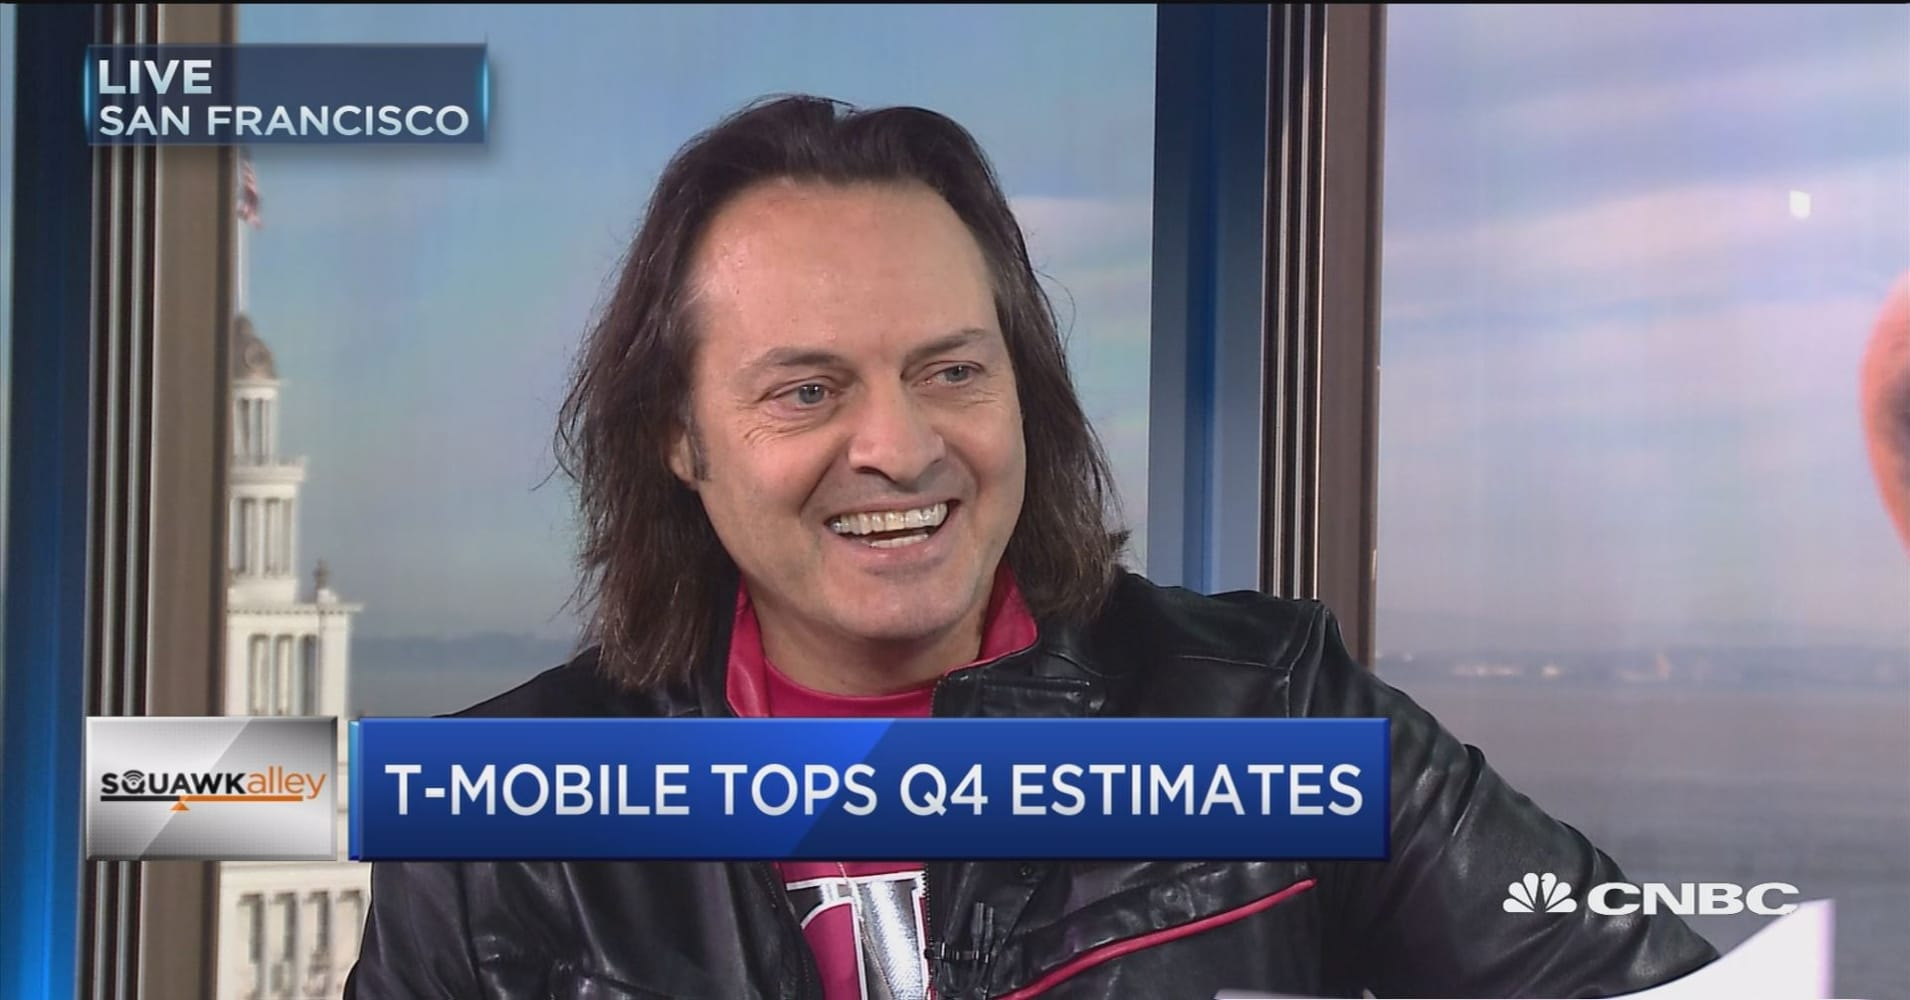 Full interview with T-Mobile CEO John Legere on earnings, countering Verizon's data plan